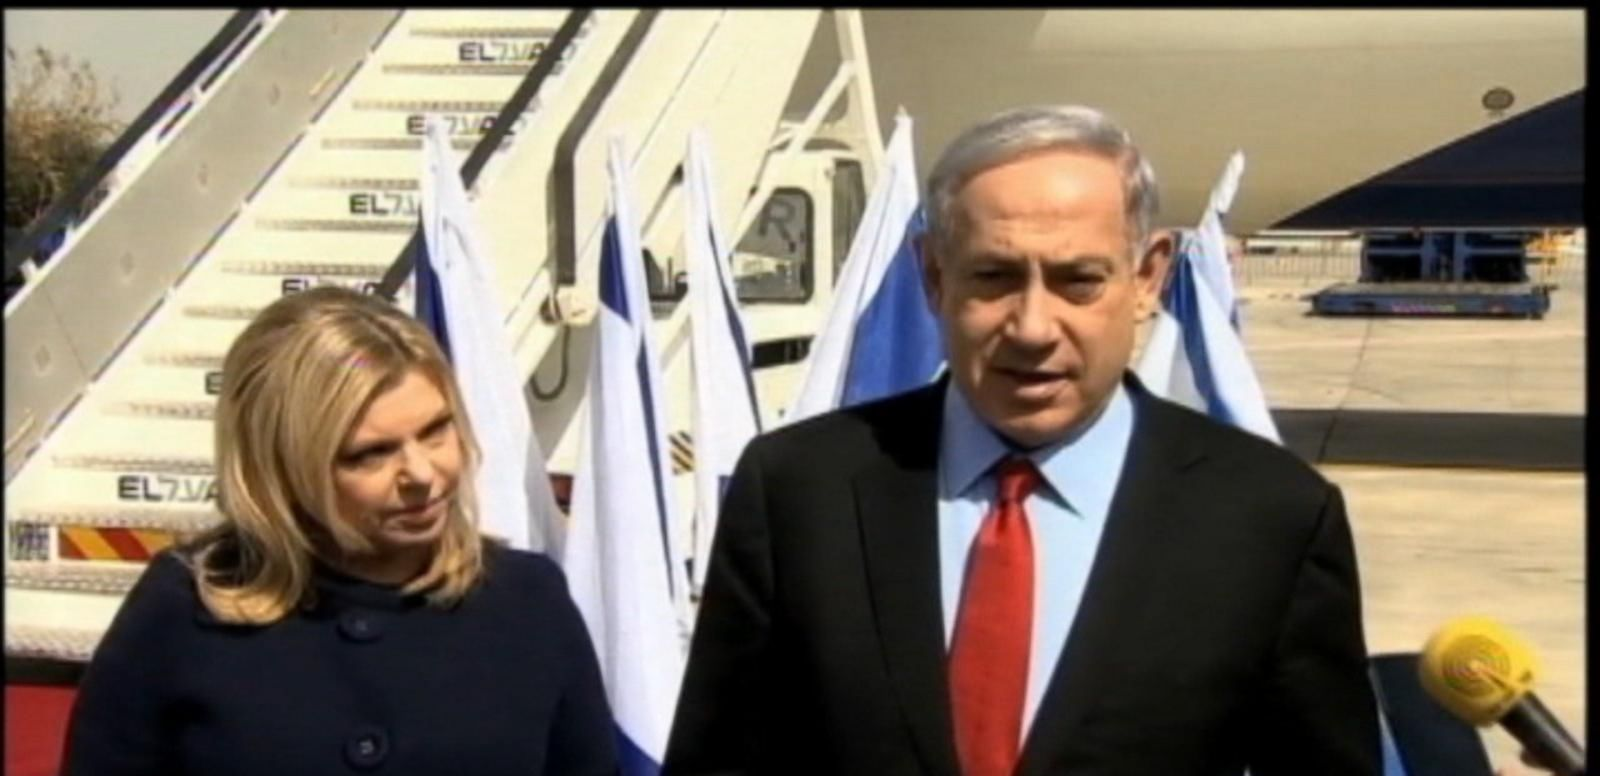 VIDEO: US-Israeli Relationship Will Be Tested by Netanyahu Speech